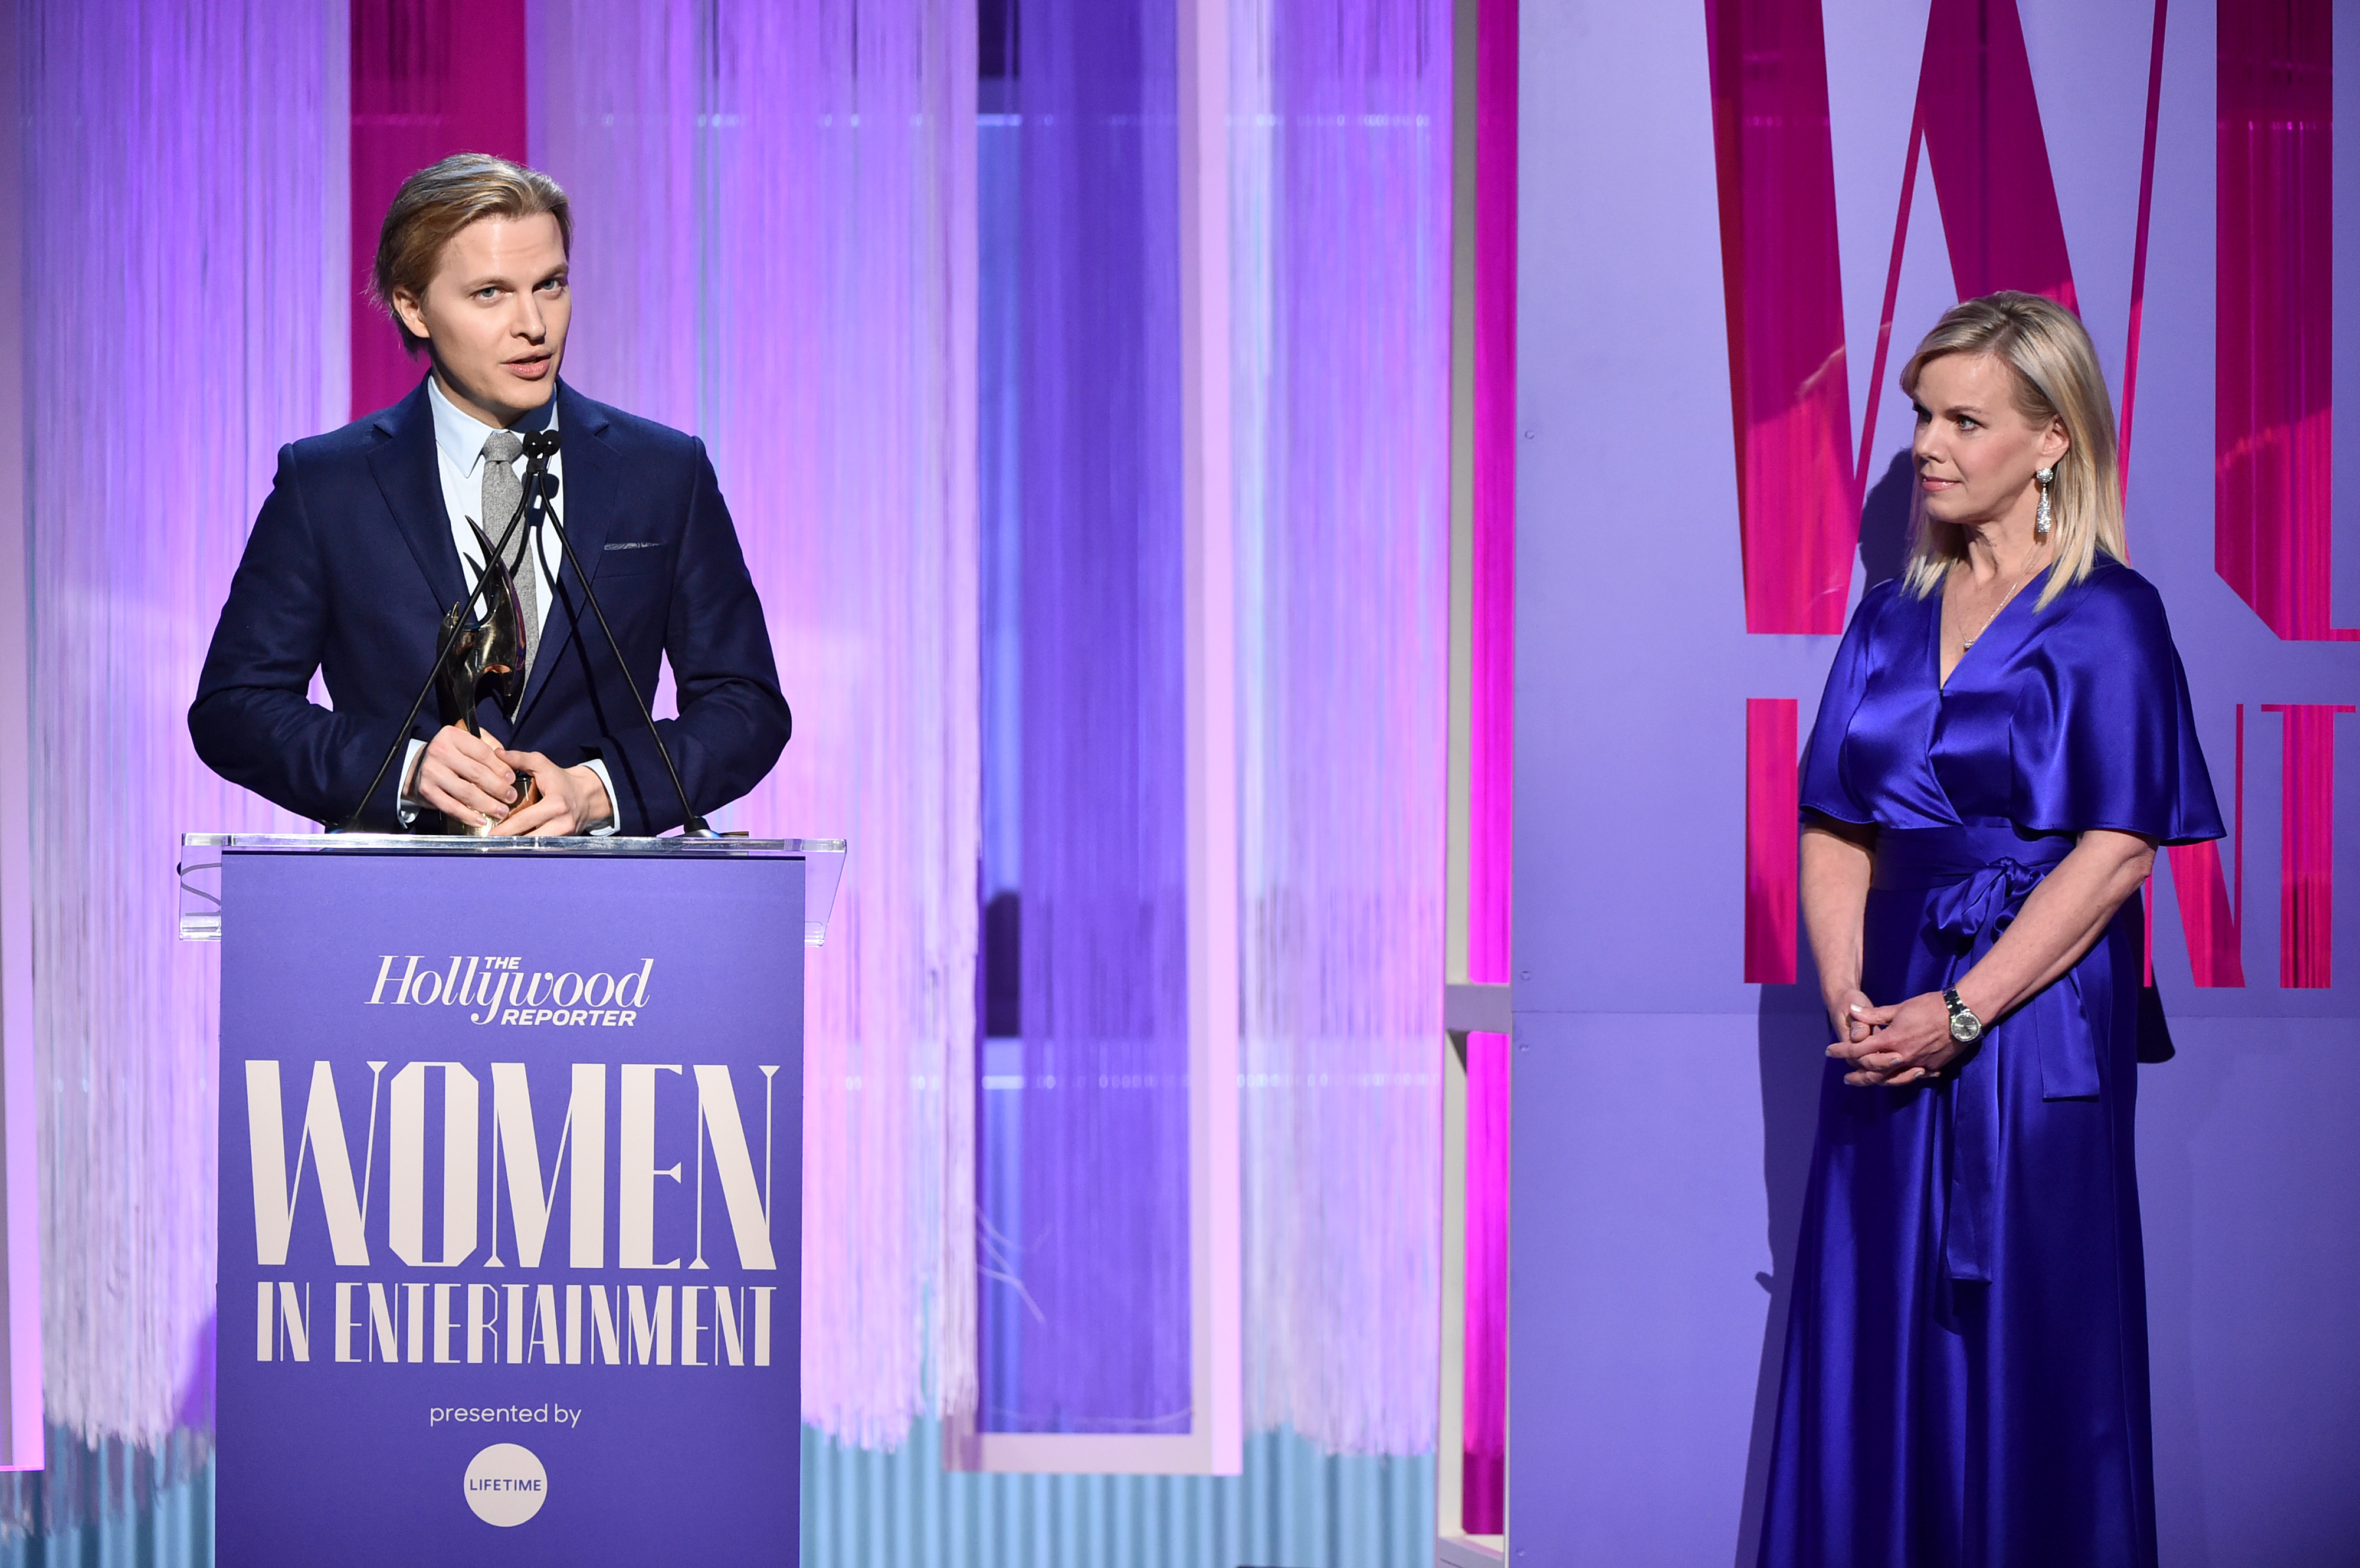 Honoree Ronan Farrow accepts the Equity in Entertainment Award from TV personality Gretchen Carlson onstage during The Hollywood Reporter's Power 100 Women in Entertainment at Milk Studios on December 11, 2019 in Hollywood, California. (Alberto E. Rodriguez/Getty Images for The Hollywood Reporter)